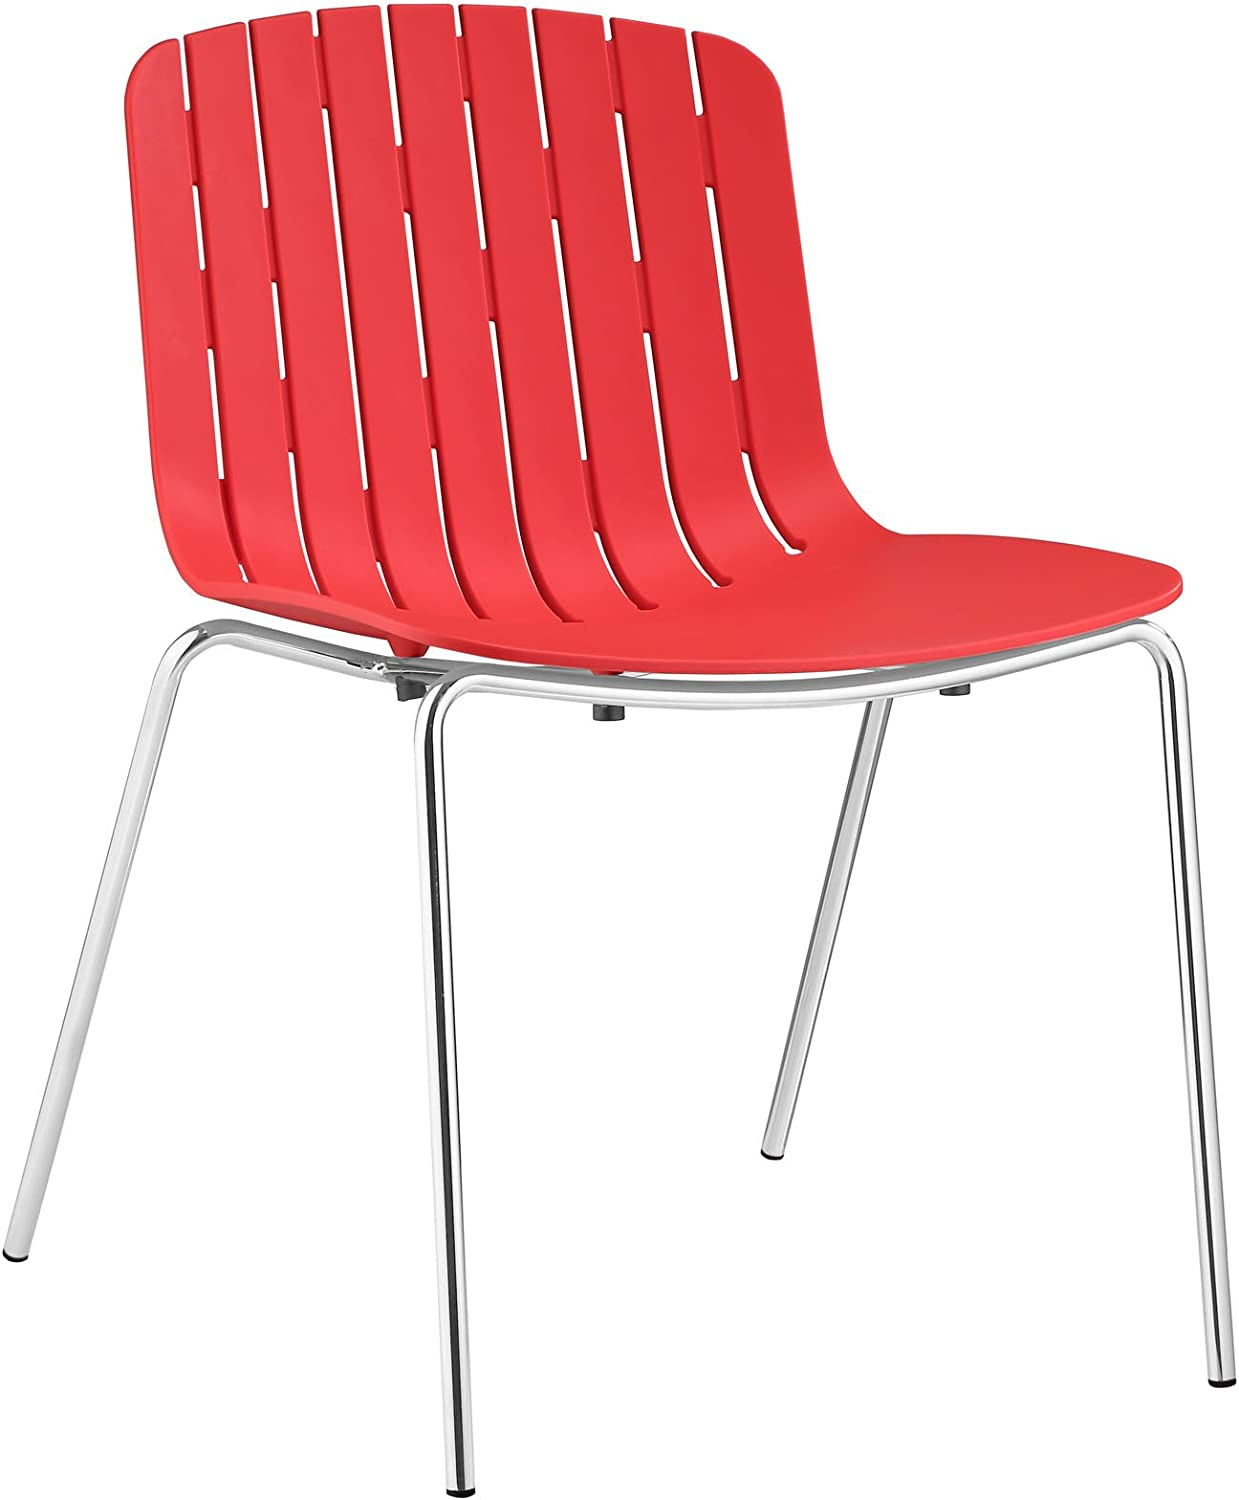 Modway Trace Dining Side Chair, Red